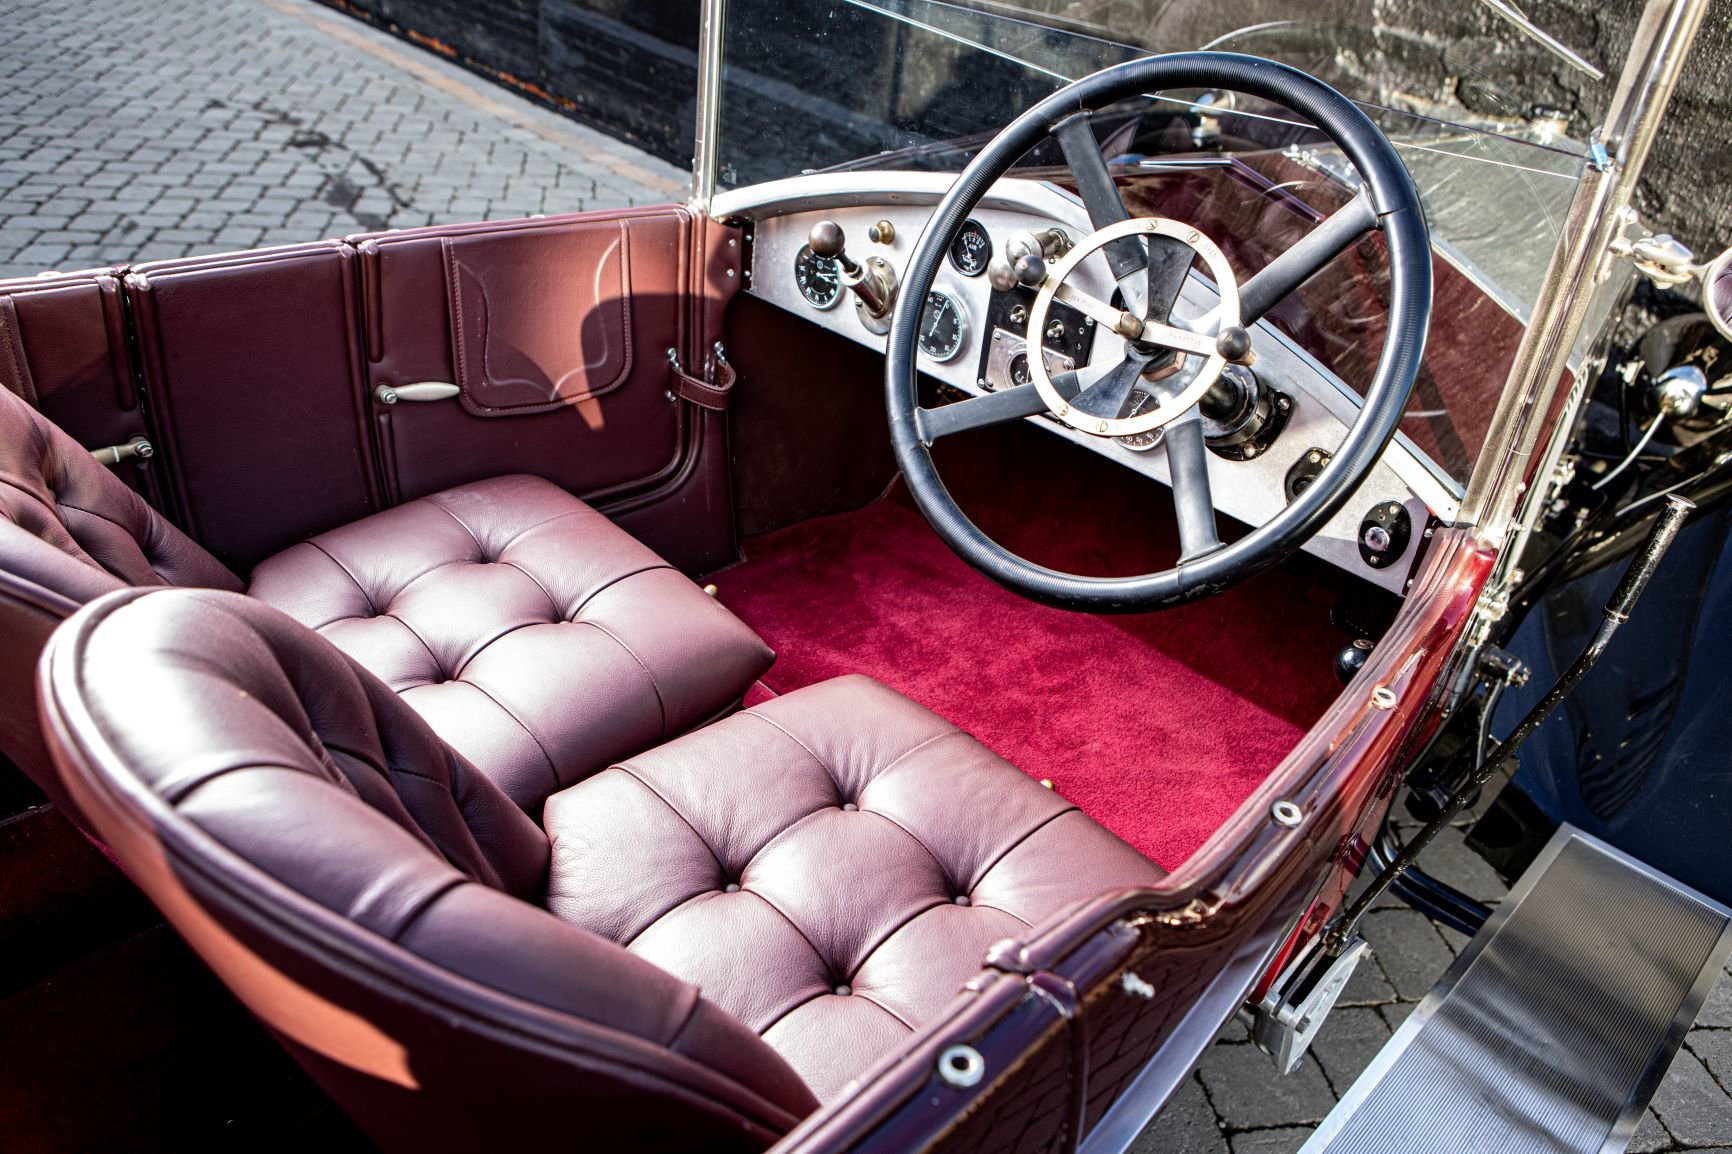 1924 Vauxhall 30-98 OE Velox Tourer For Sale (picture 4 of 6)